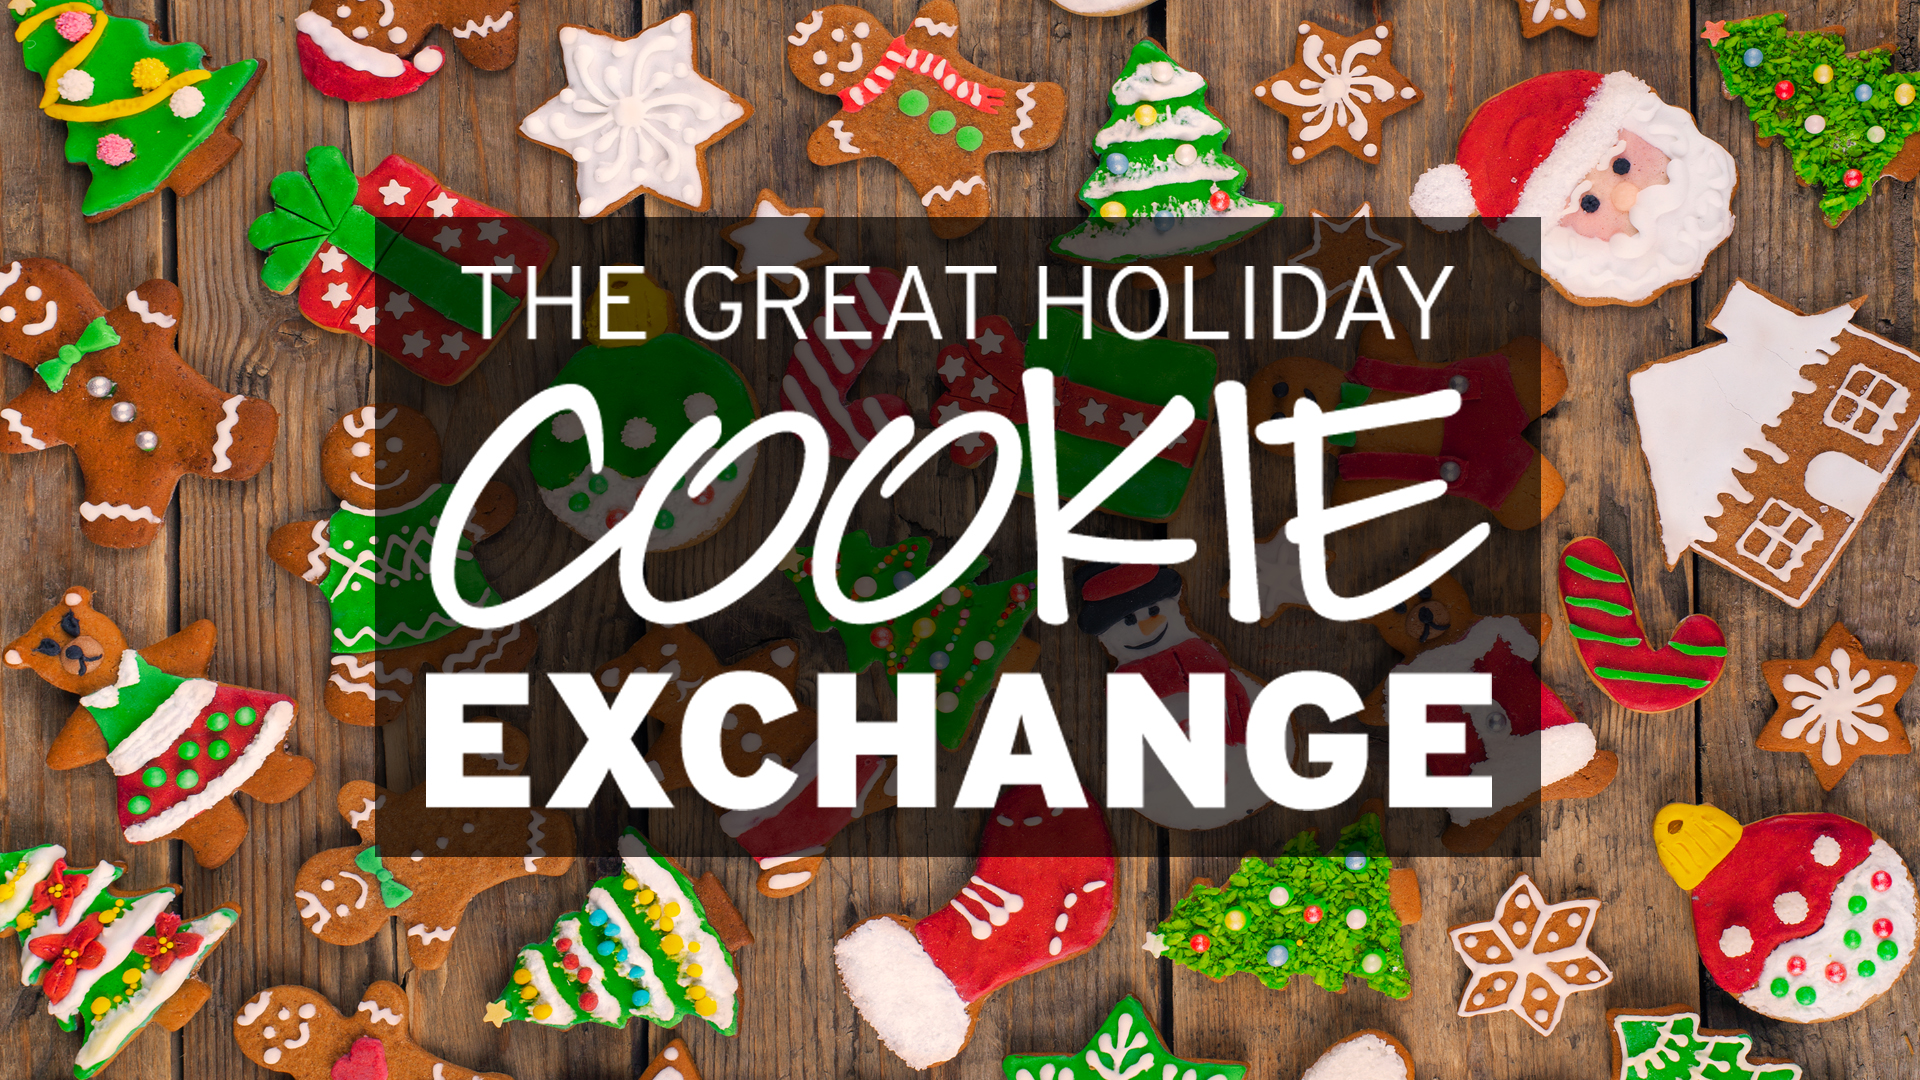 The Great Holiday Cookie Exchange Pbs Food